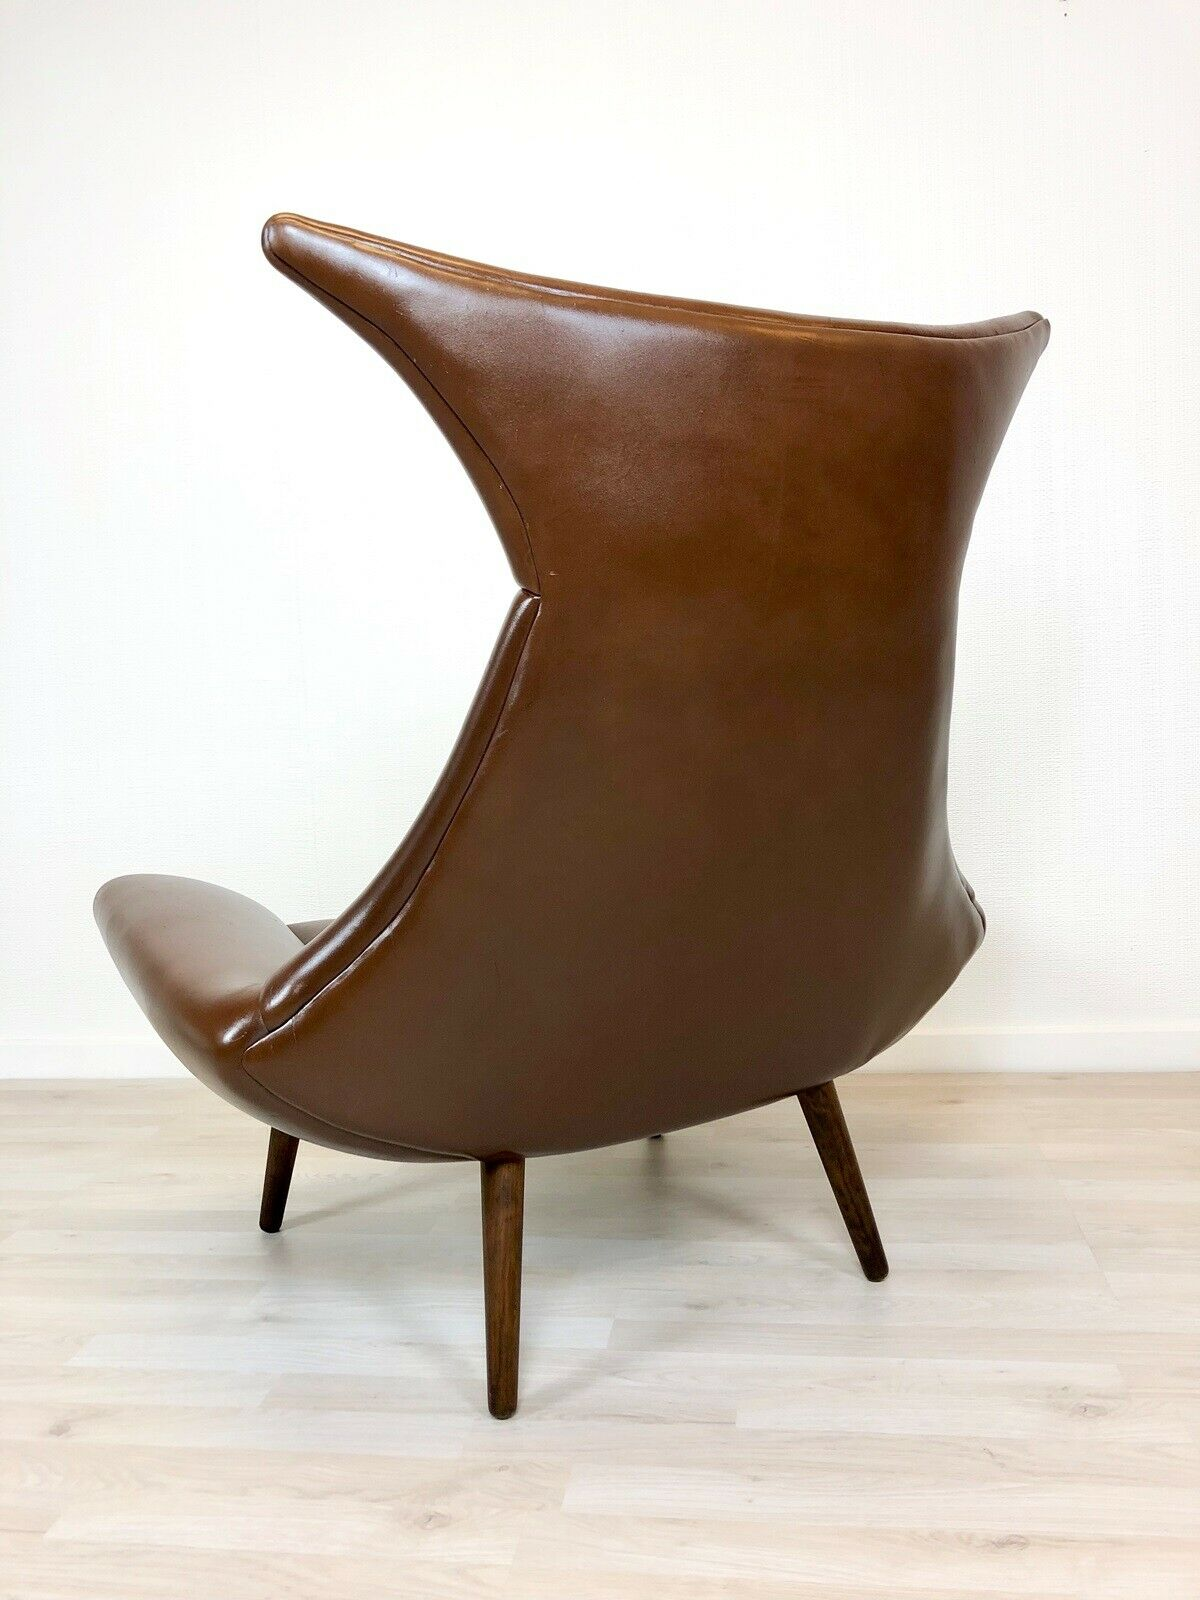 Designed in 1962 by Bent Møller Jepsen, and made by Sitamo